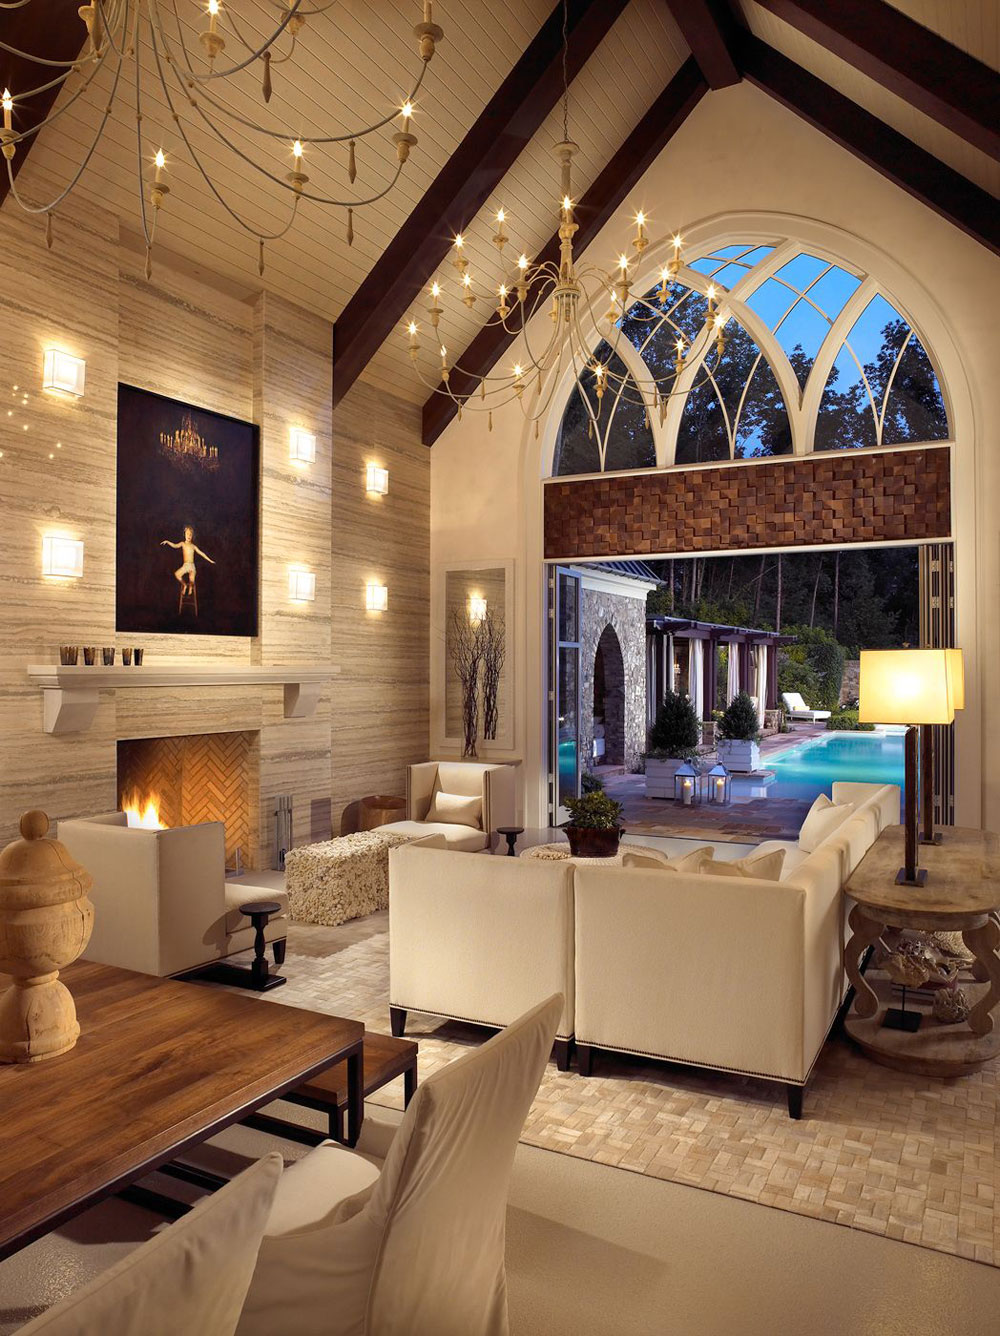 Vaulted Ceiling Living Room Design Ideas 1 Vaulted Ceiling Living